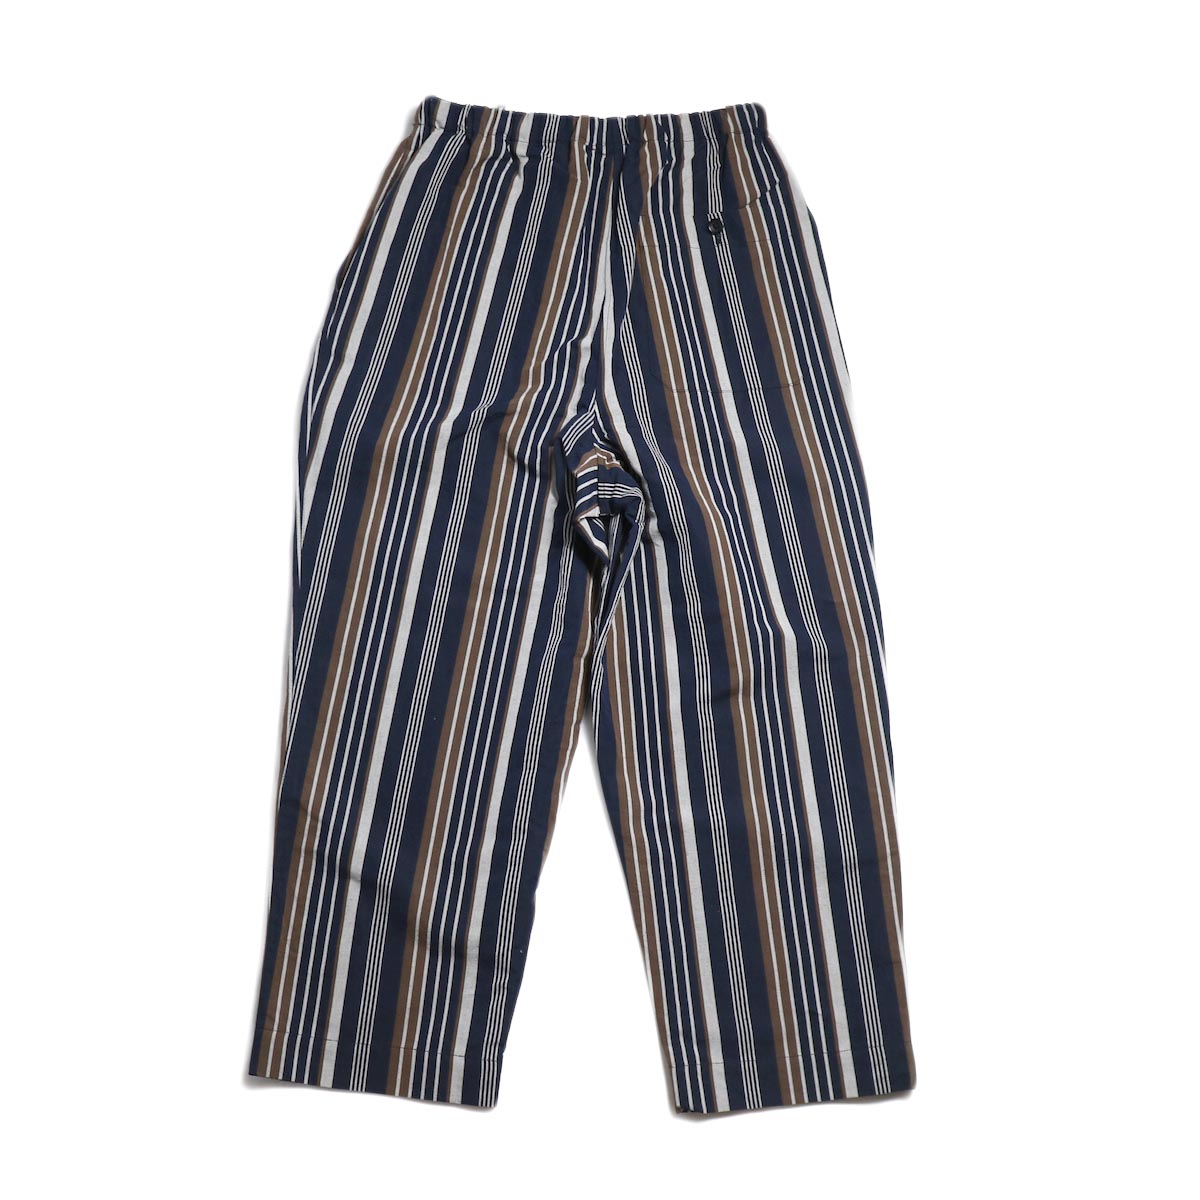 A VONTADE / Lax Easy Pants -Navy Stripe 背面